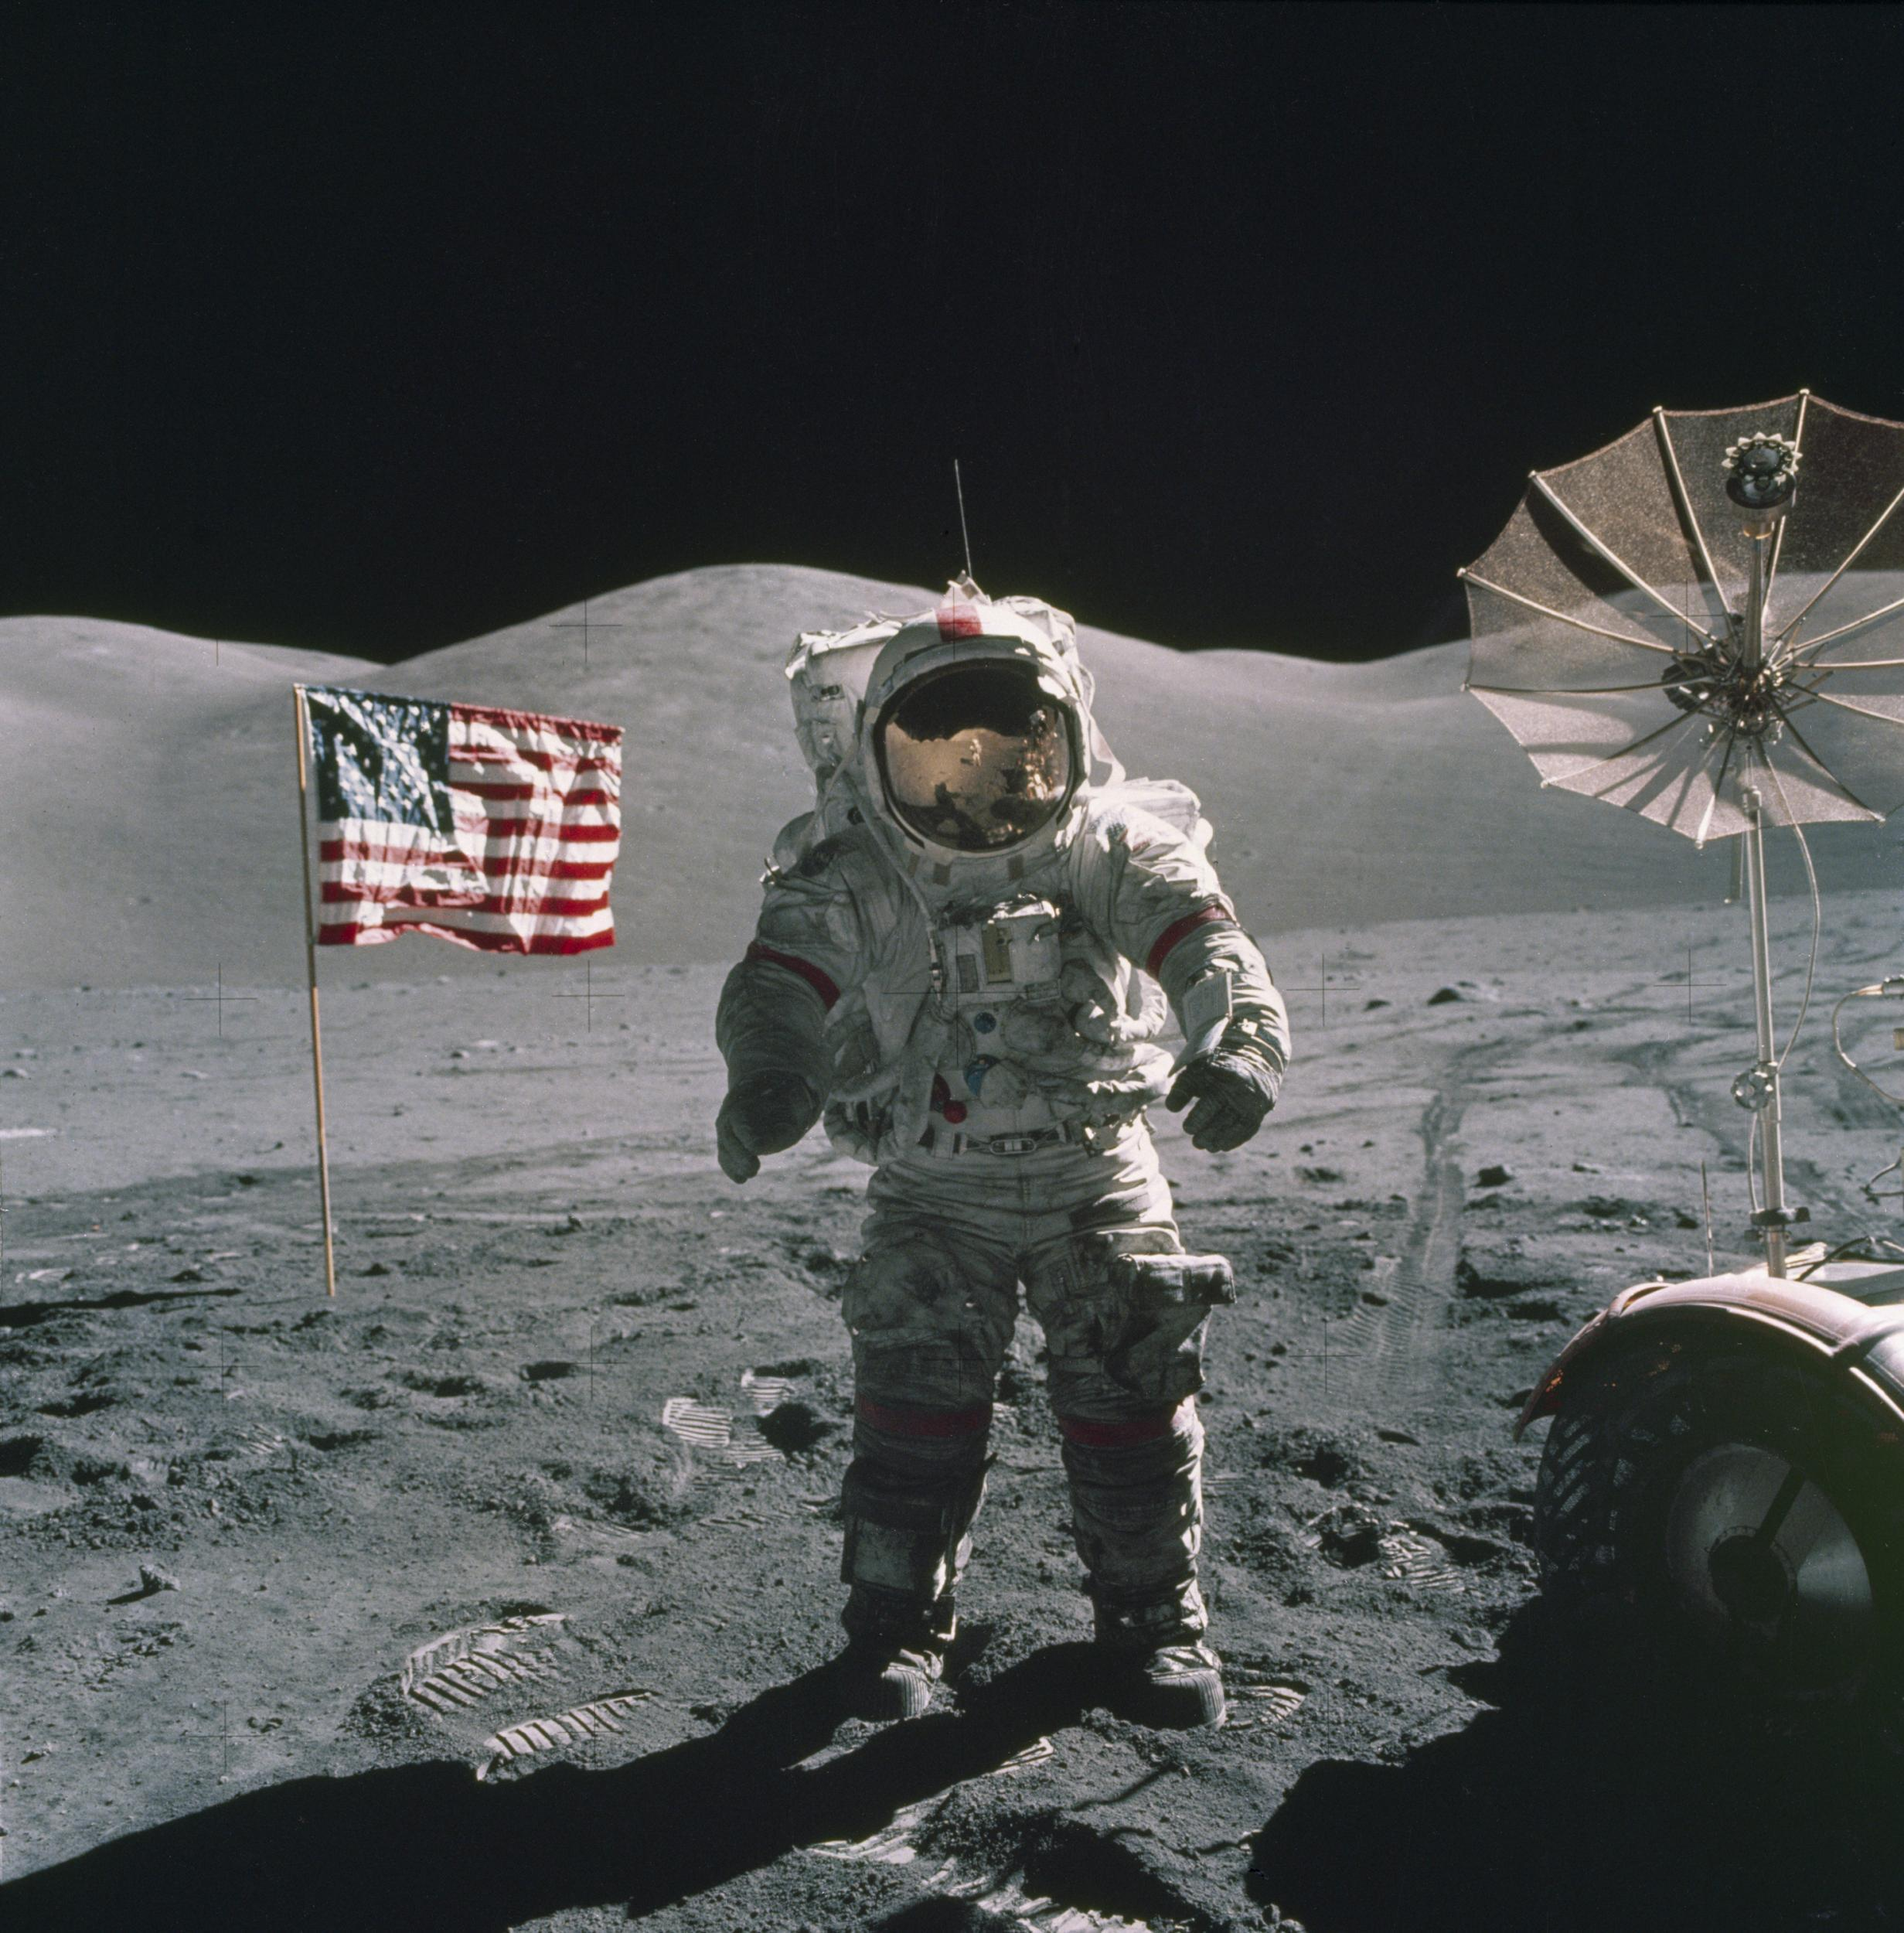 Moon Landings: Conspiracy theorists claim there's something wrong